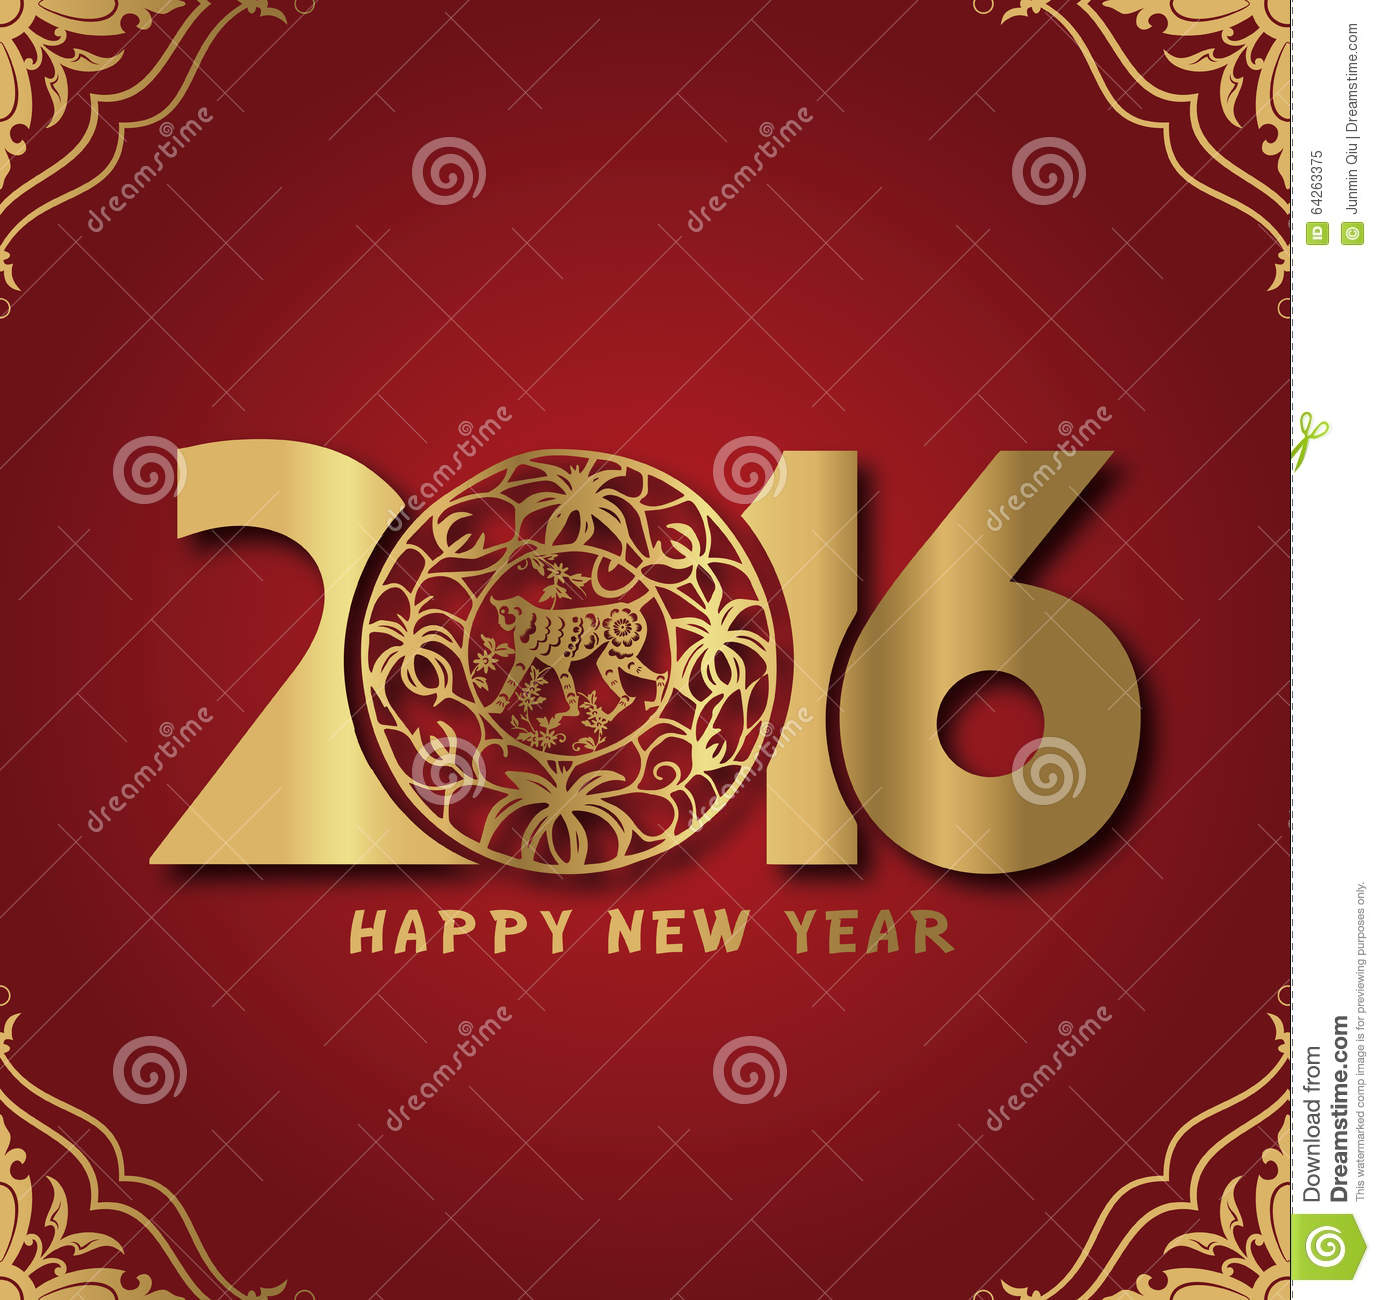 Royalty Free Stock Photo: 2016, New Year, Lunar New Year ...